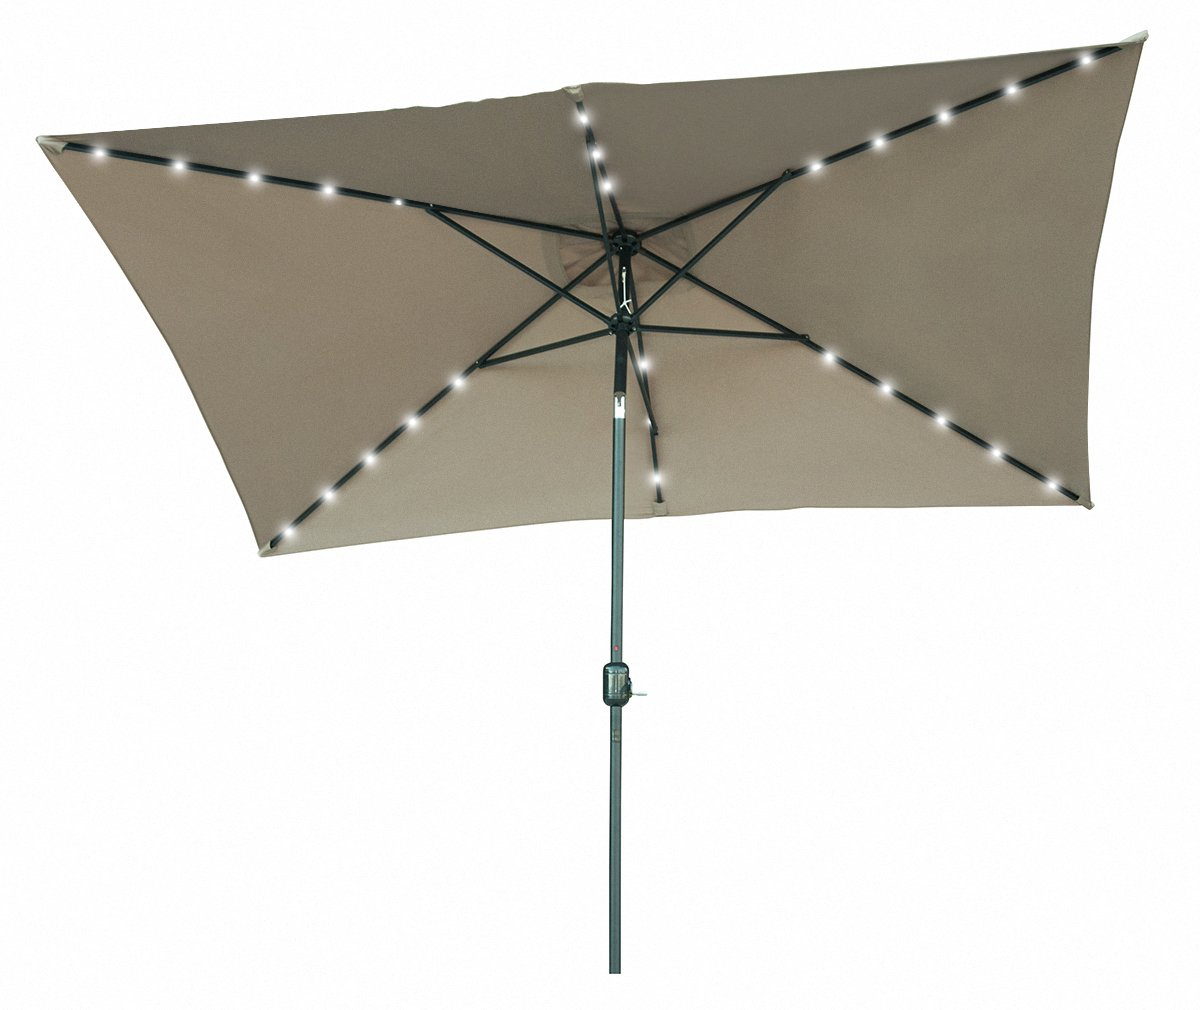 Amazon.com : Rectangular Solar Powered LED Lighted Patio Umbrella   10u0027 X  6.5u0027   By Trademark Innovations (Tan) : Garden U0026 Outdoor